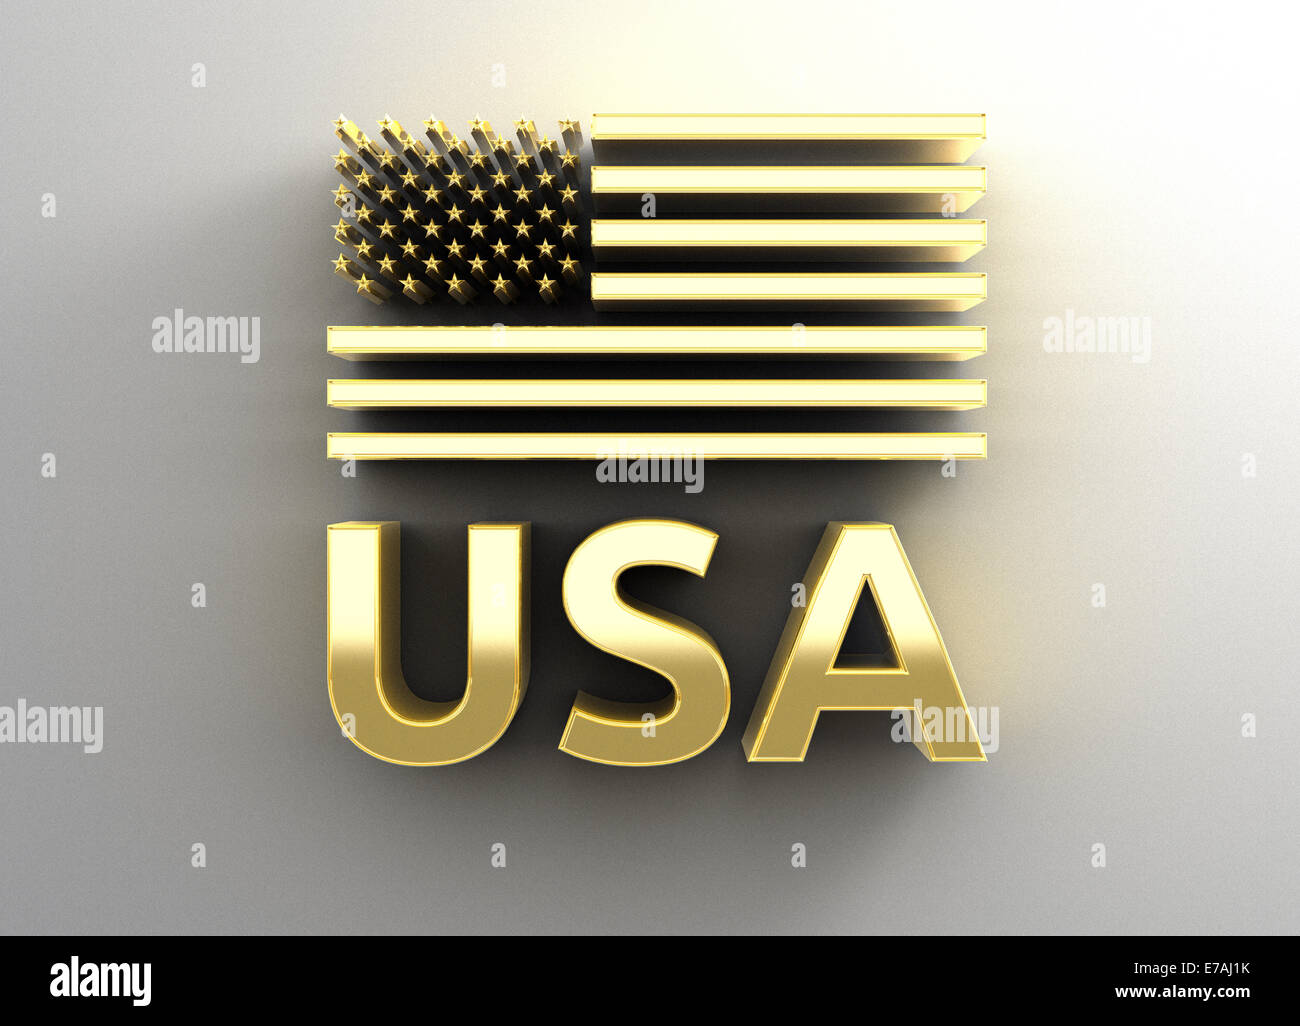 USA flag - gold 3D quality render on the wall background with soft shadow. - Stock Image